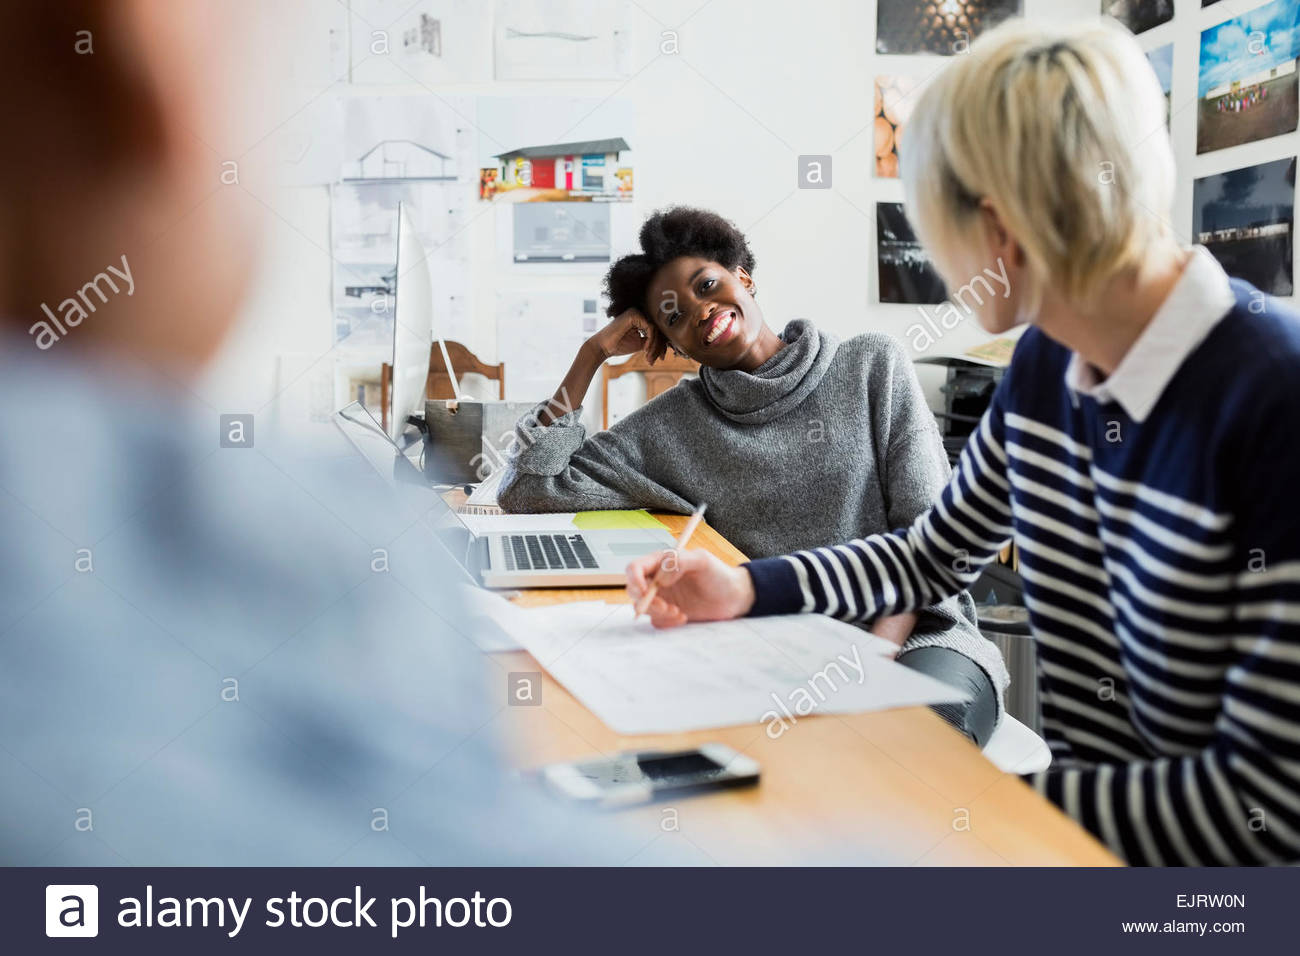 Architects meeting in office - Stock Image